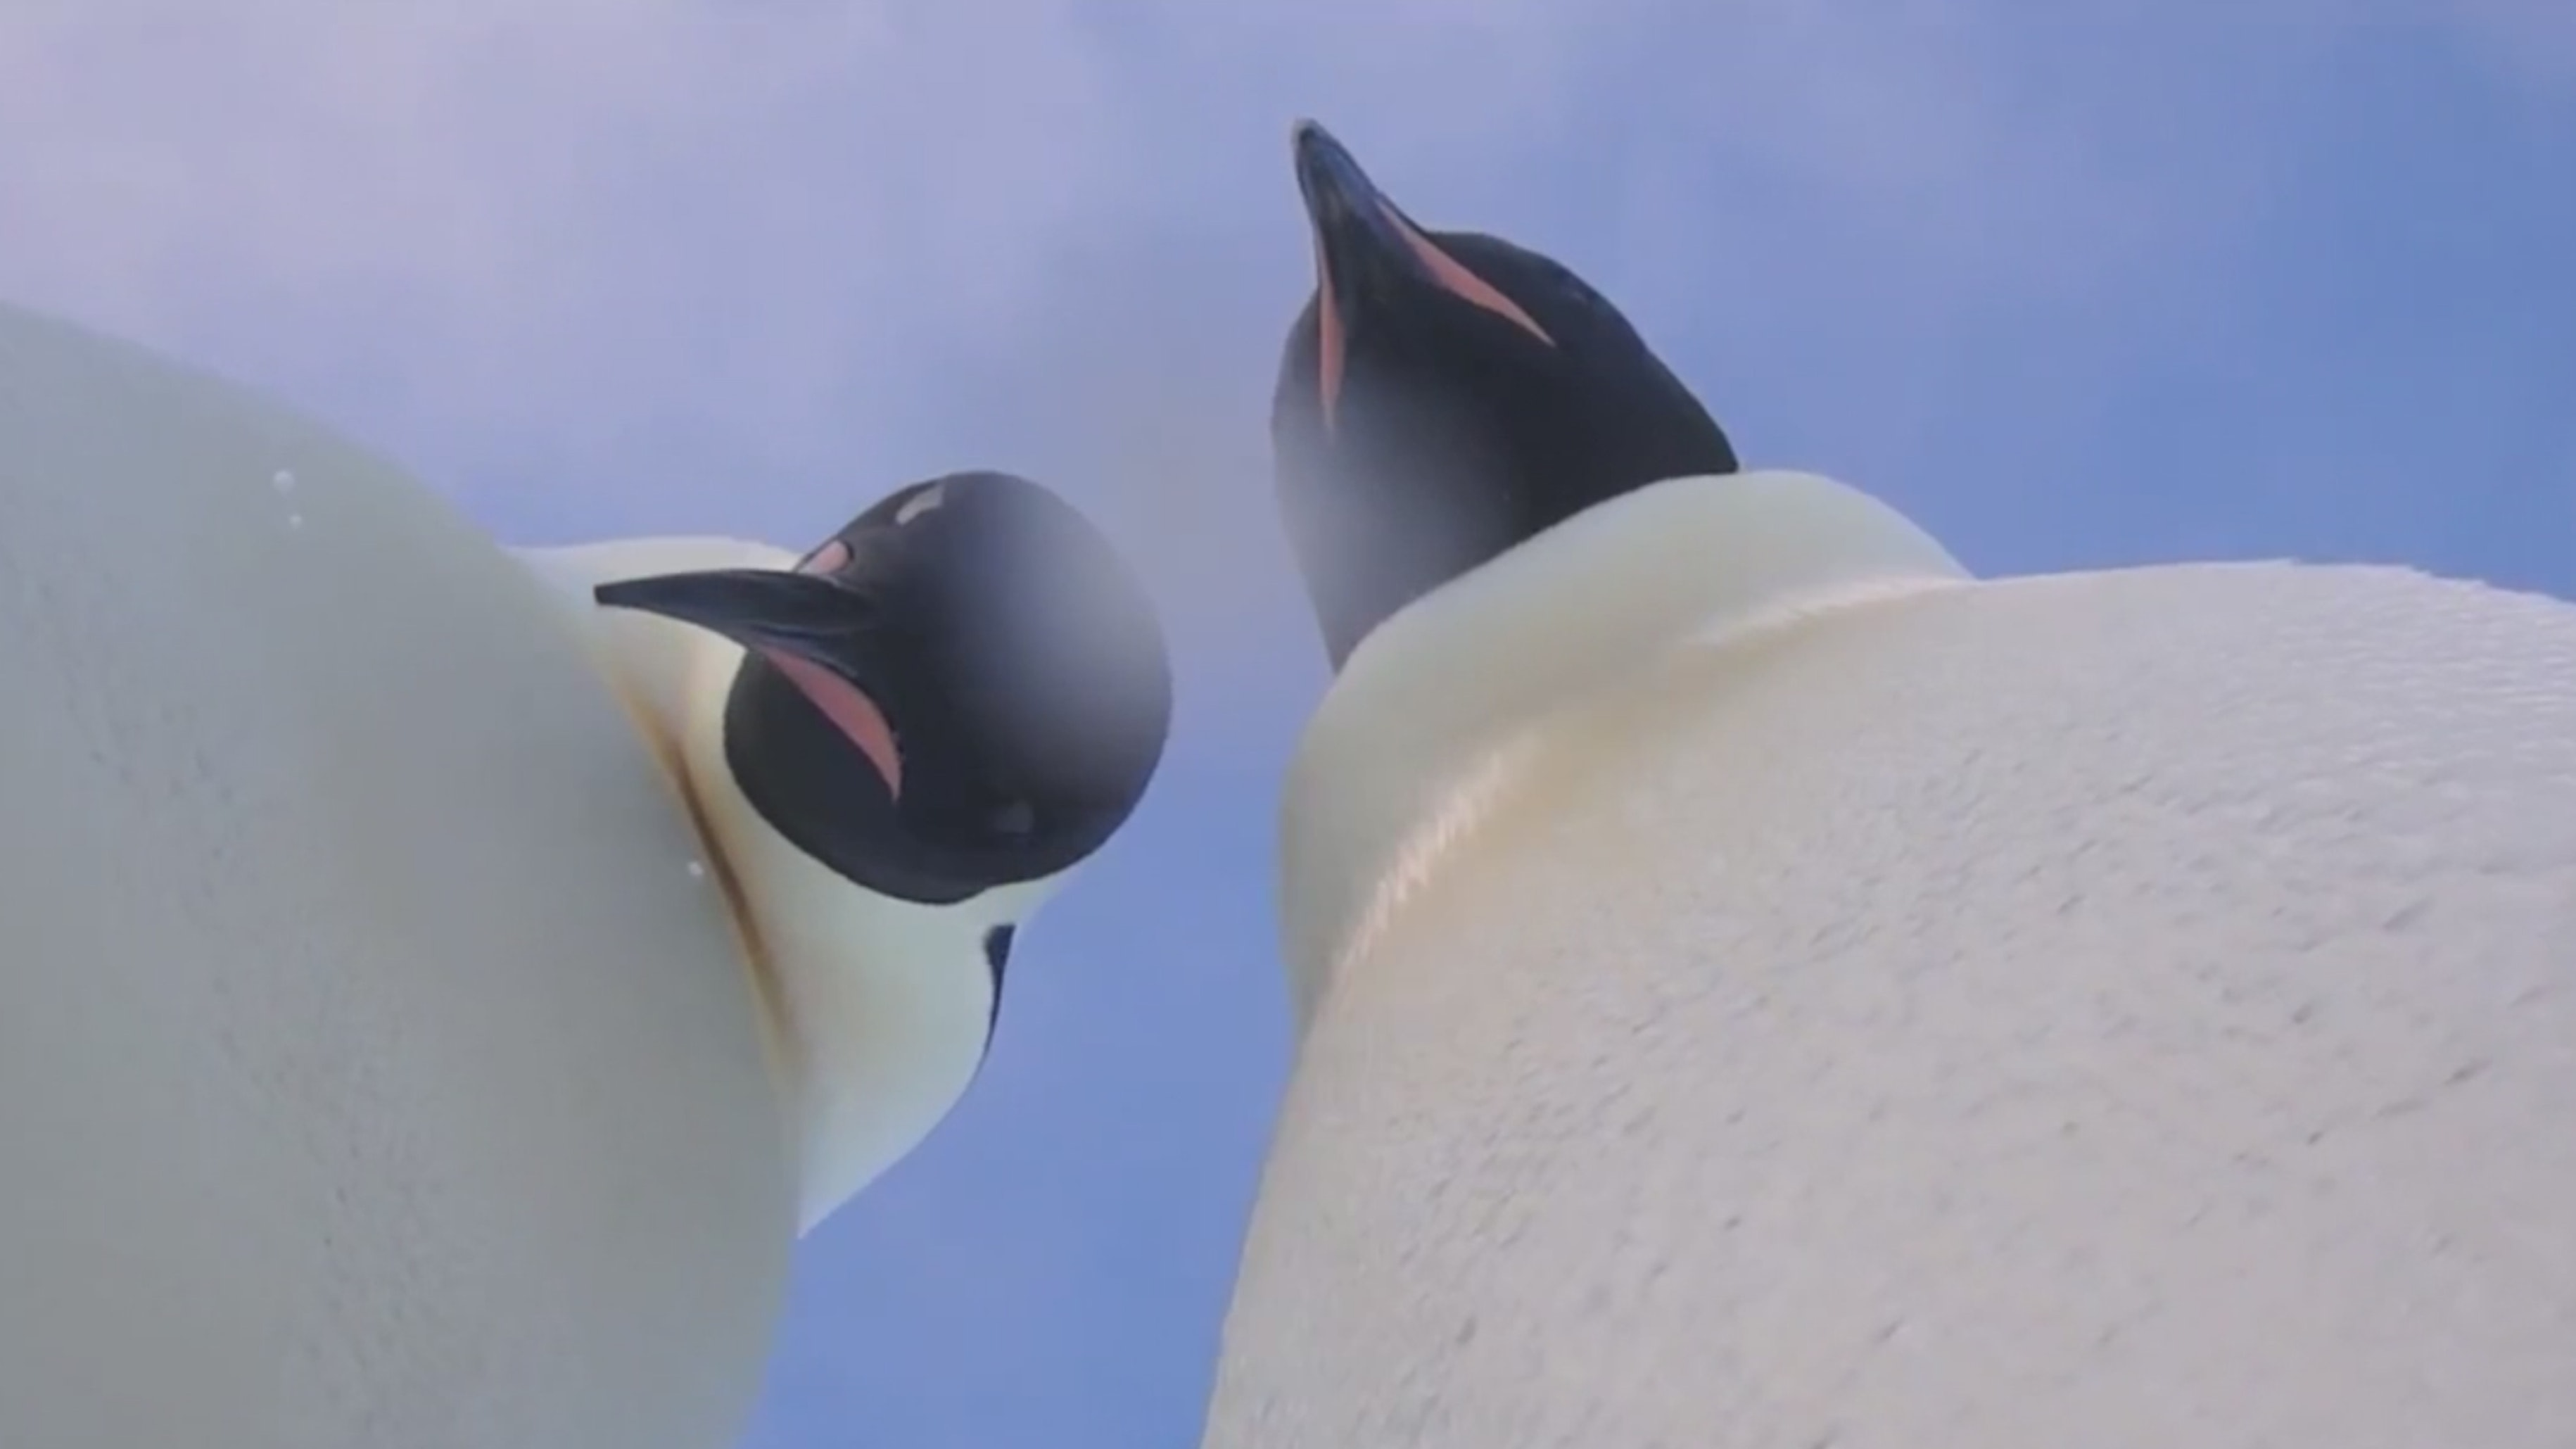 Curious penguins find camera, take video selfie